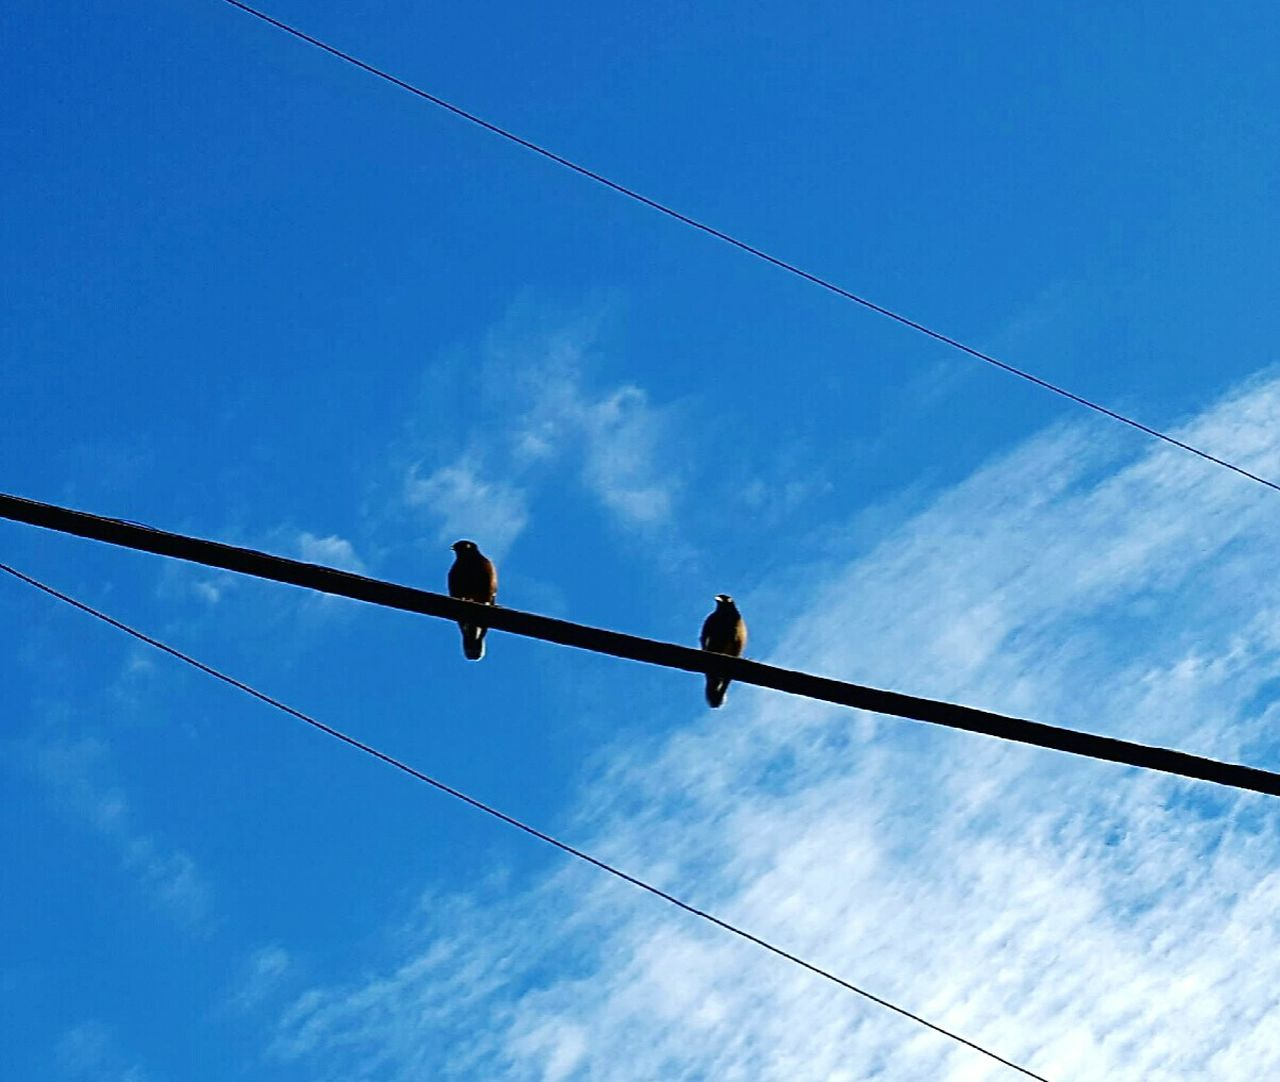 Vapor Trail Electricity  Cable Low Angle View Bird No People Power Supply Animal Wildlife Connection Outdoors Day Nature Sky Two Mynah Birds Kaneohe Oahu Live Aloha Paradise